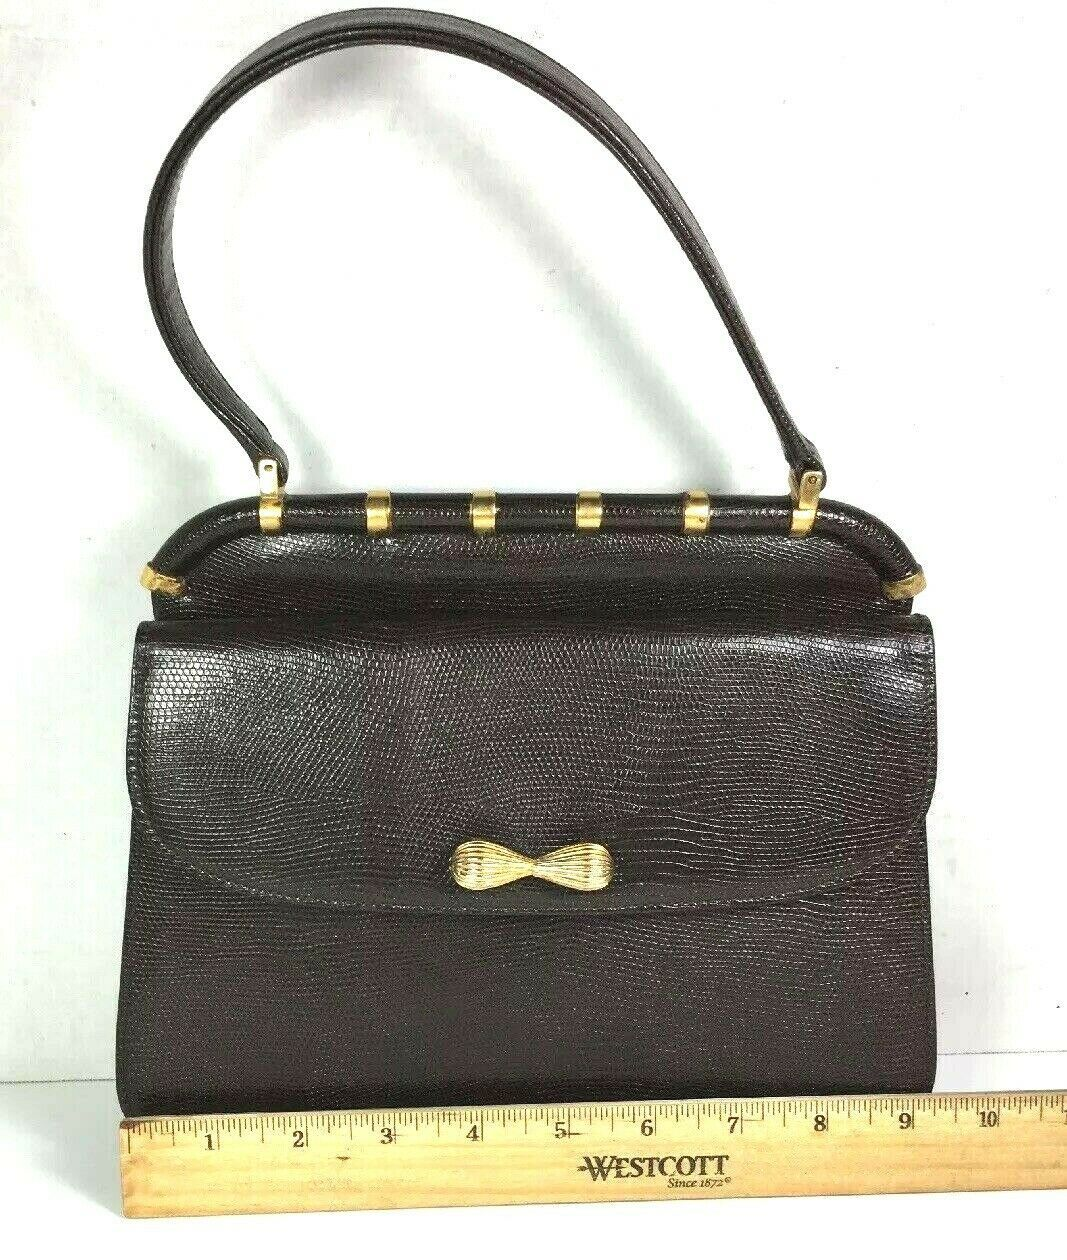 Saks Fifth Avenue True Vintage Small Brown Leather Handbag with Coin Purse